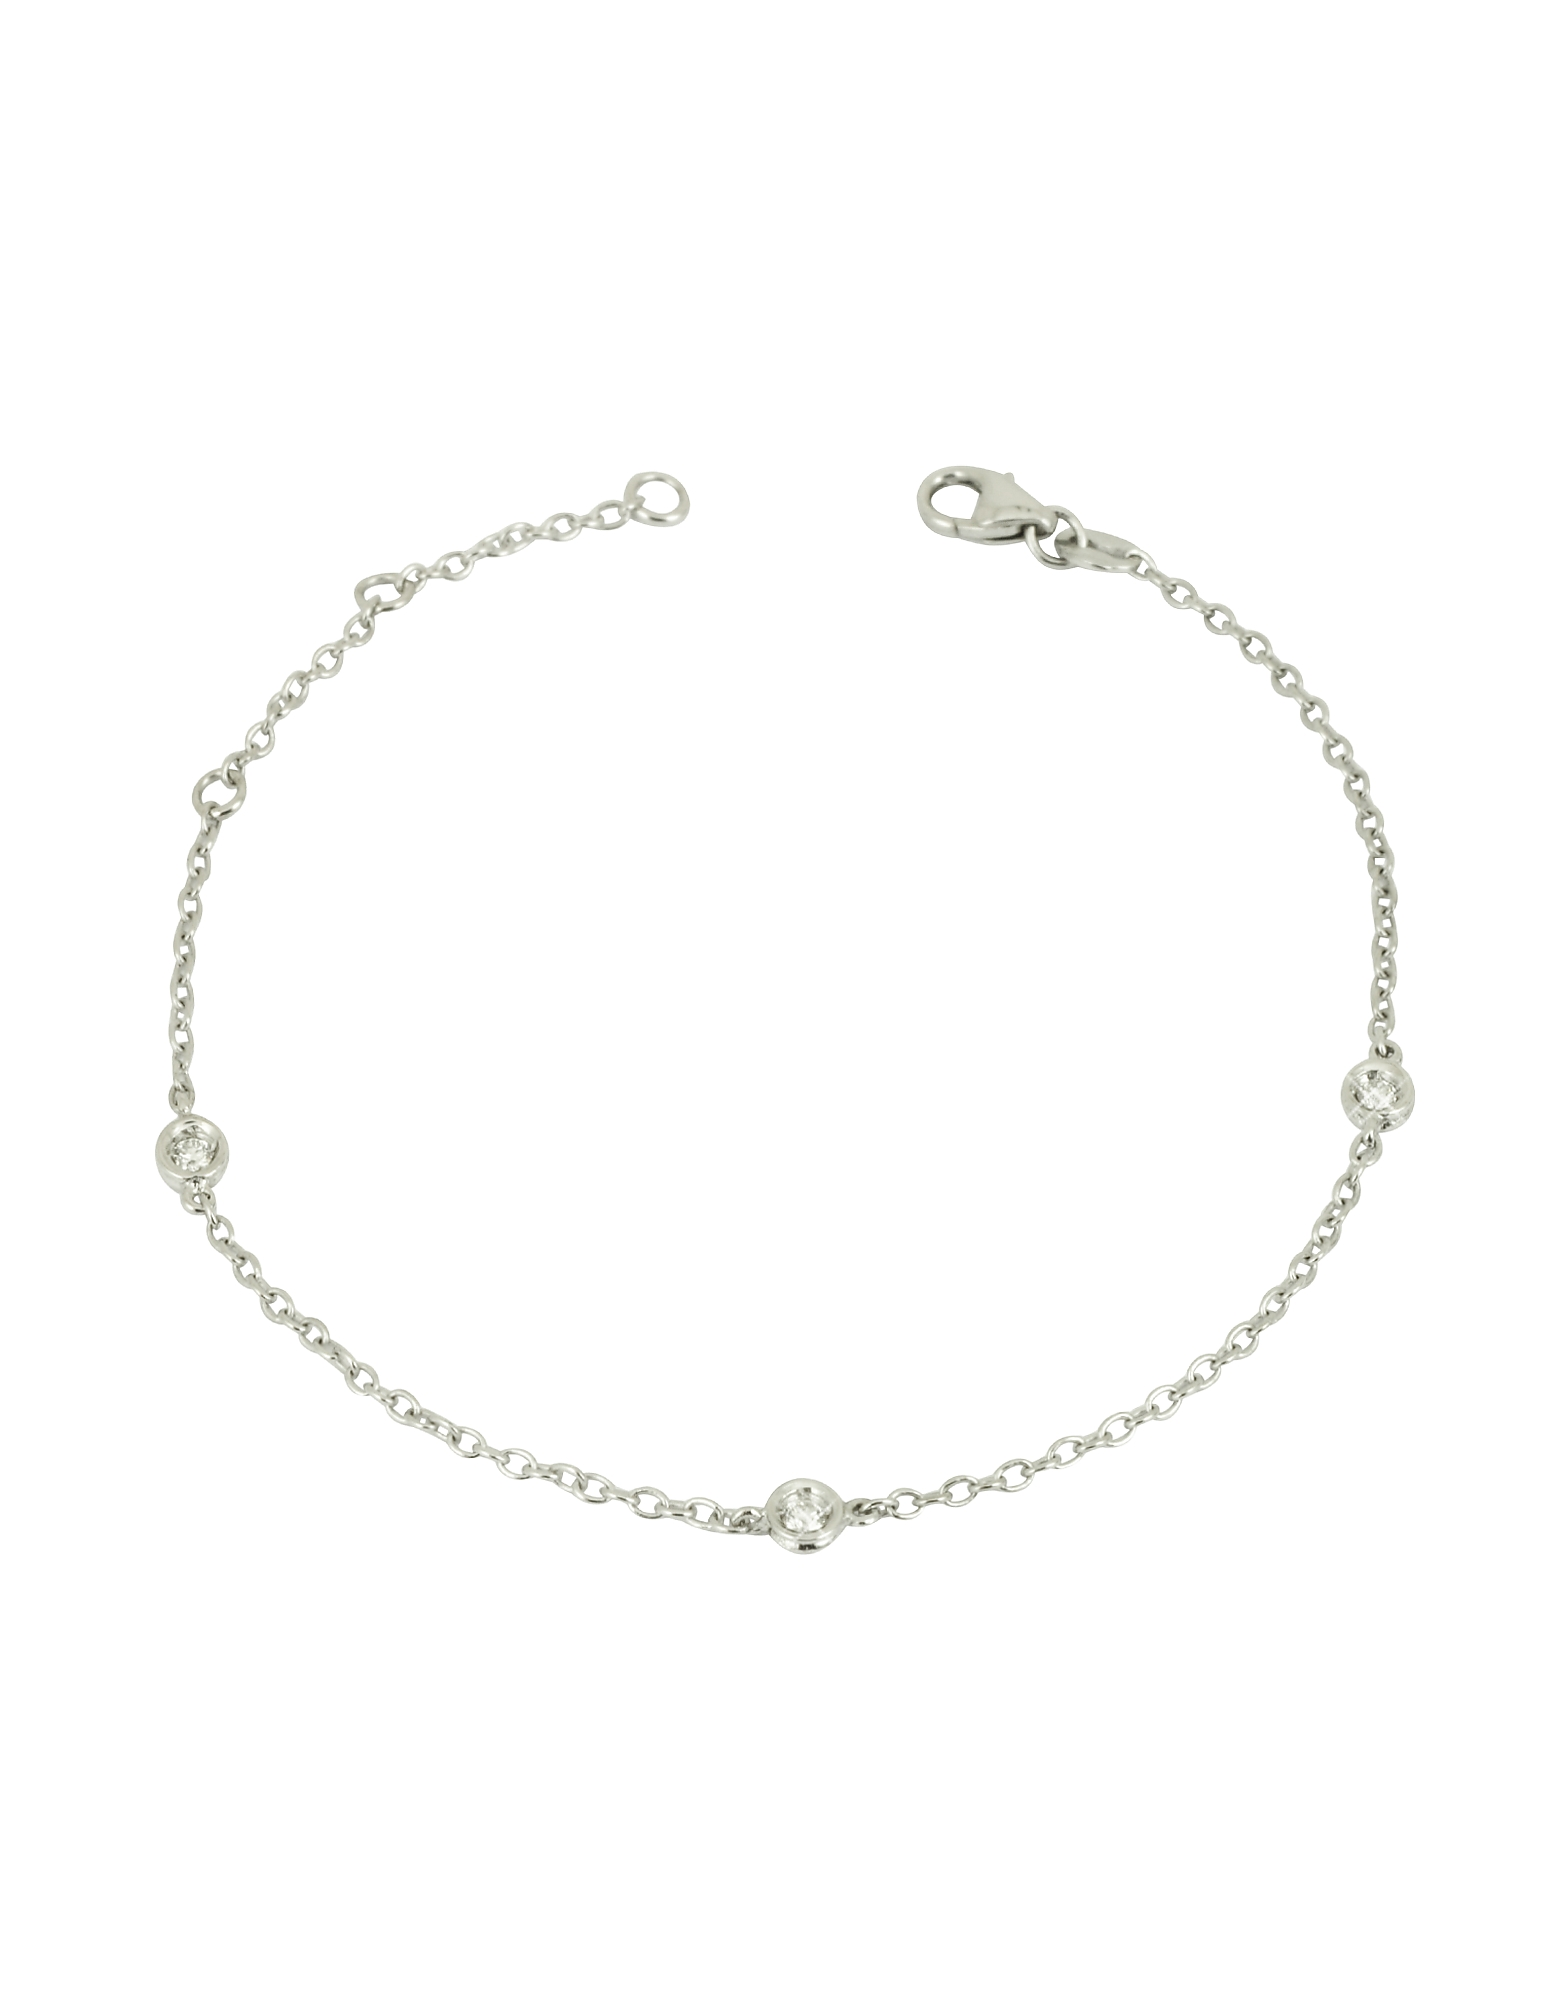 Image of 0.09 ct Diamond 18K Gold Bracelet adds a delicate feminine touch when worn alone or stacked next to an elegant watch. Featuring three sparkling diamonds interspersed on a delicate 18k white gold chain bracelet with lobster closure. Made in Italy. fz300415